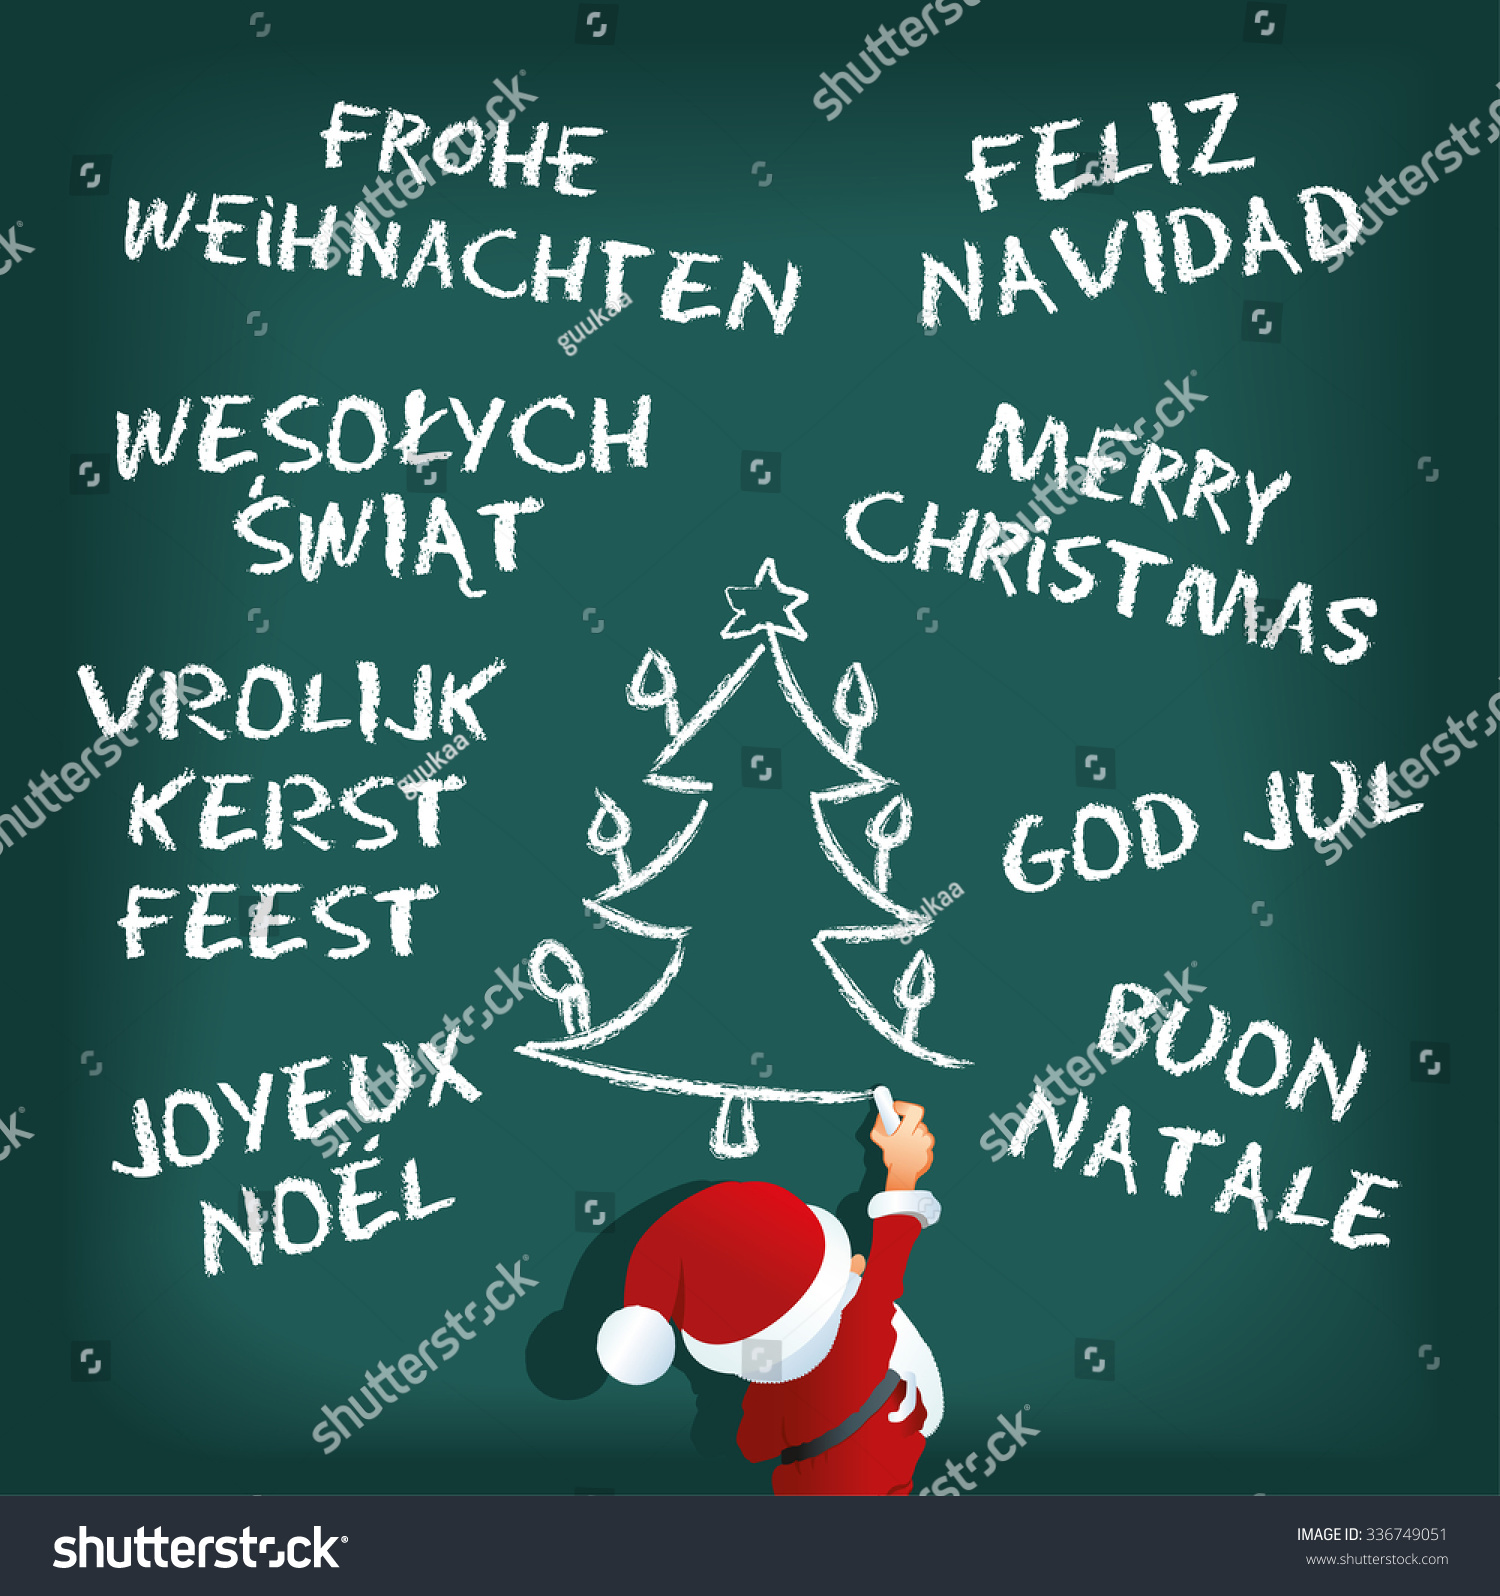 Merry Christmas In Different Languages.How To Write Merry Christmas In Ukrainian